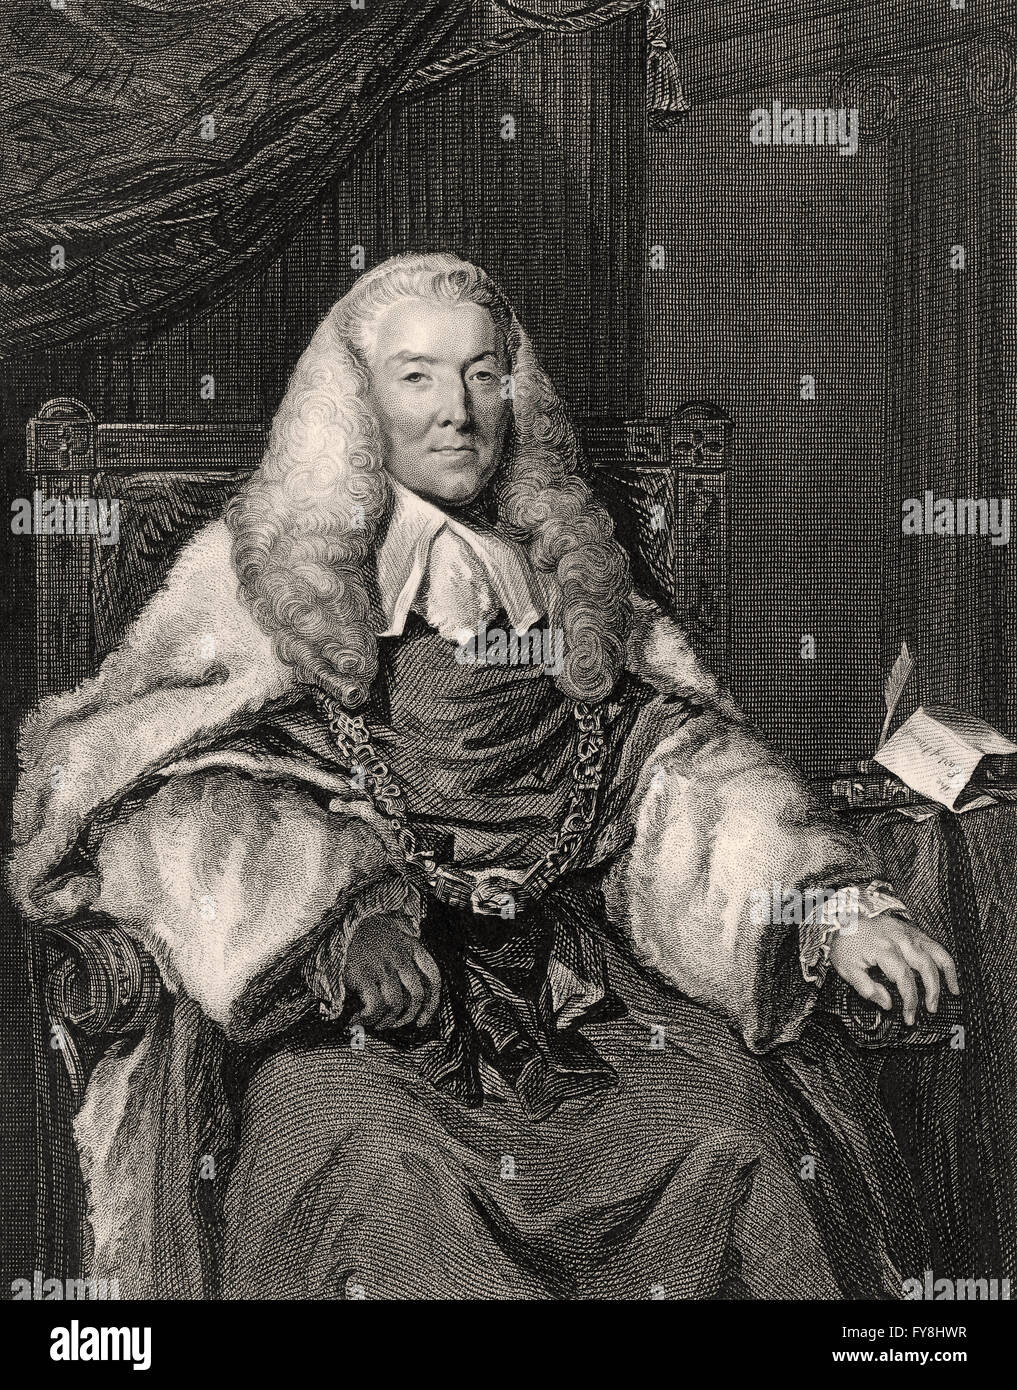 William Murray, 1st Earl of Mansfield, 1705-1793, a British barrister, politician and judge - Stock Image